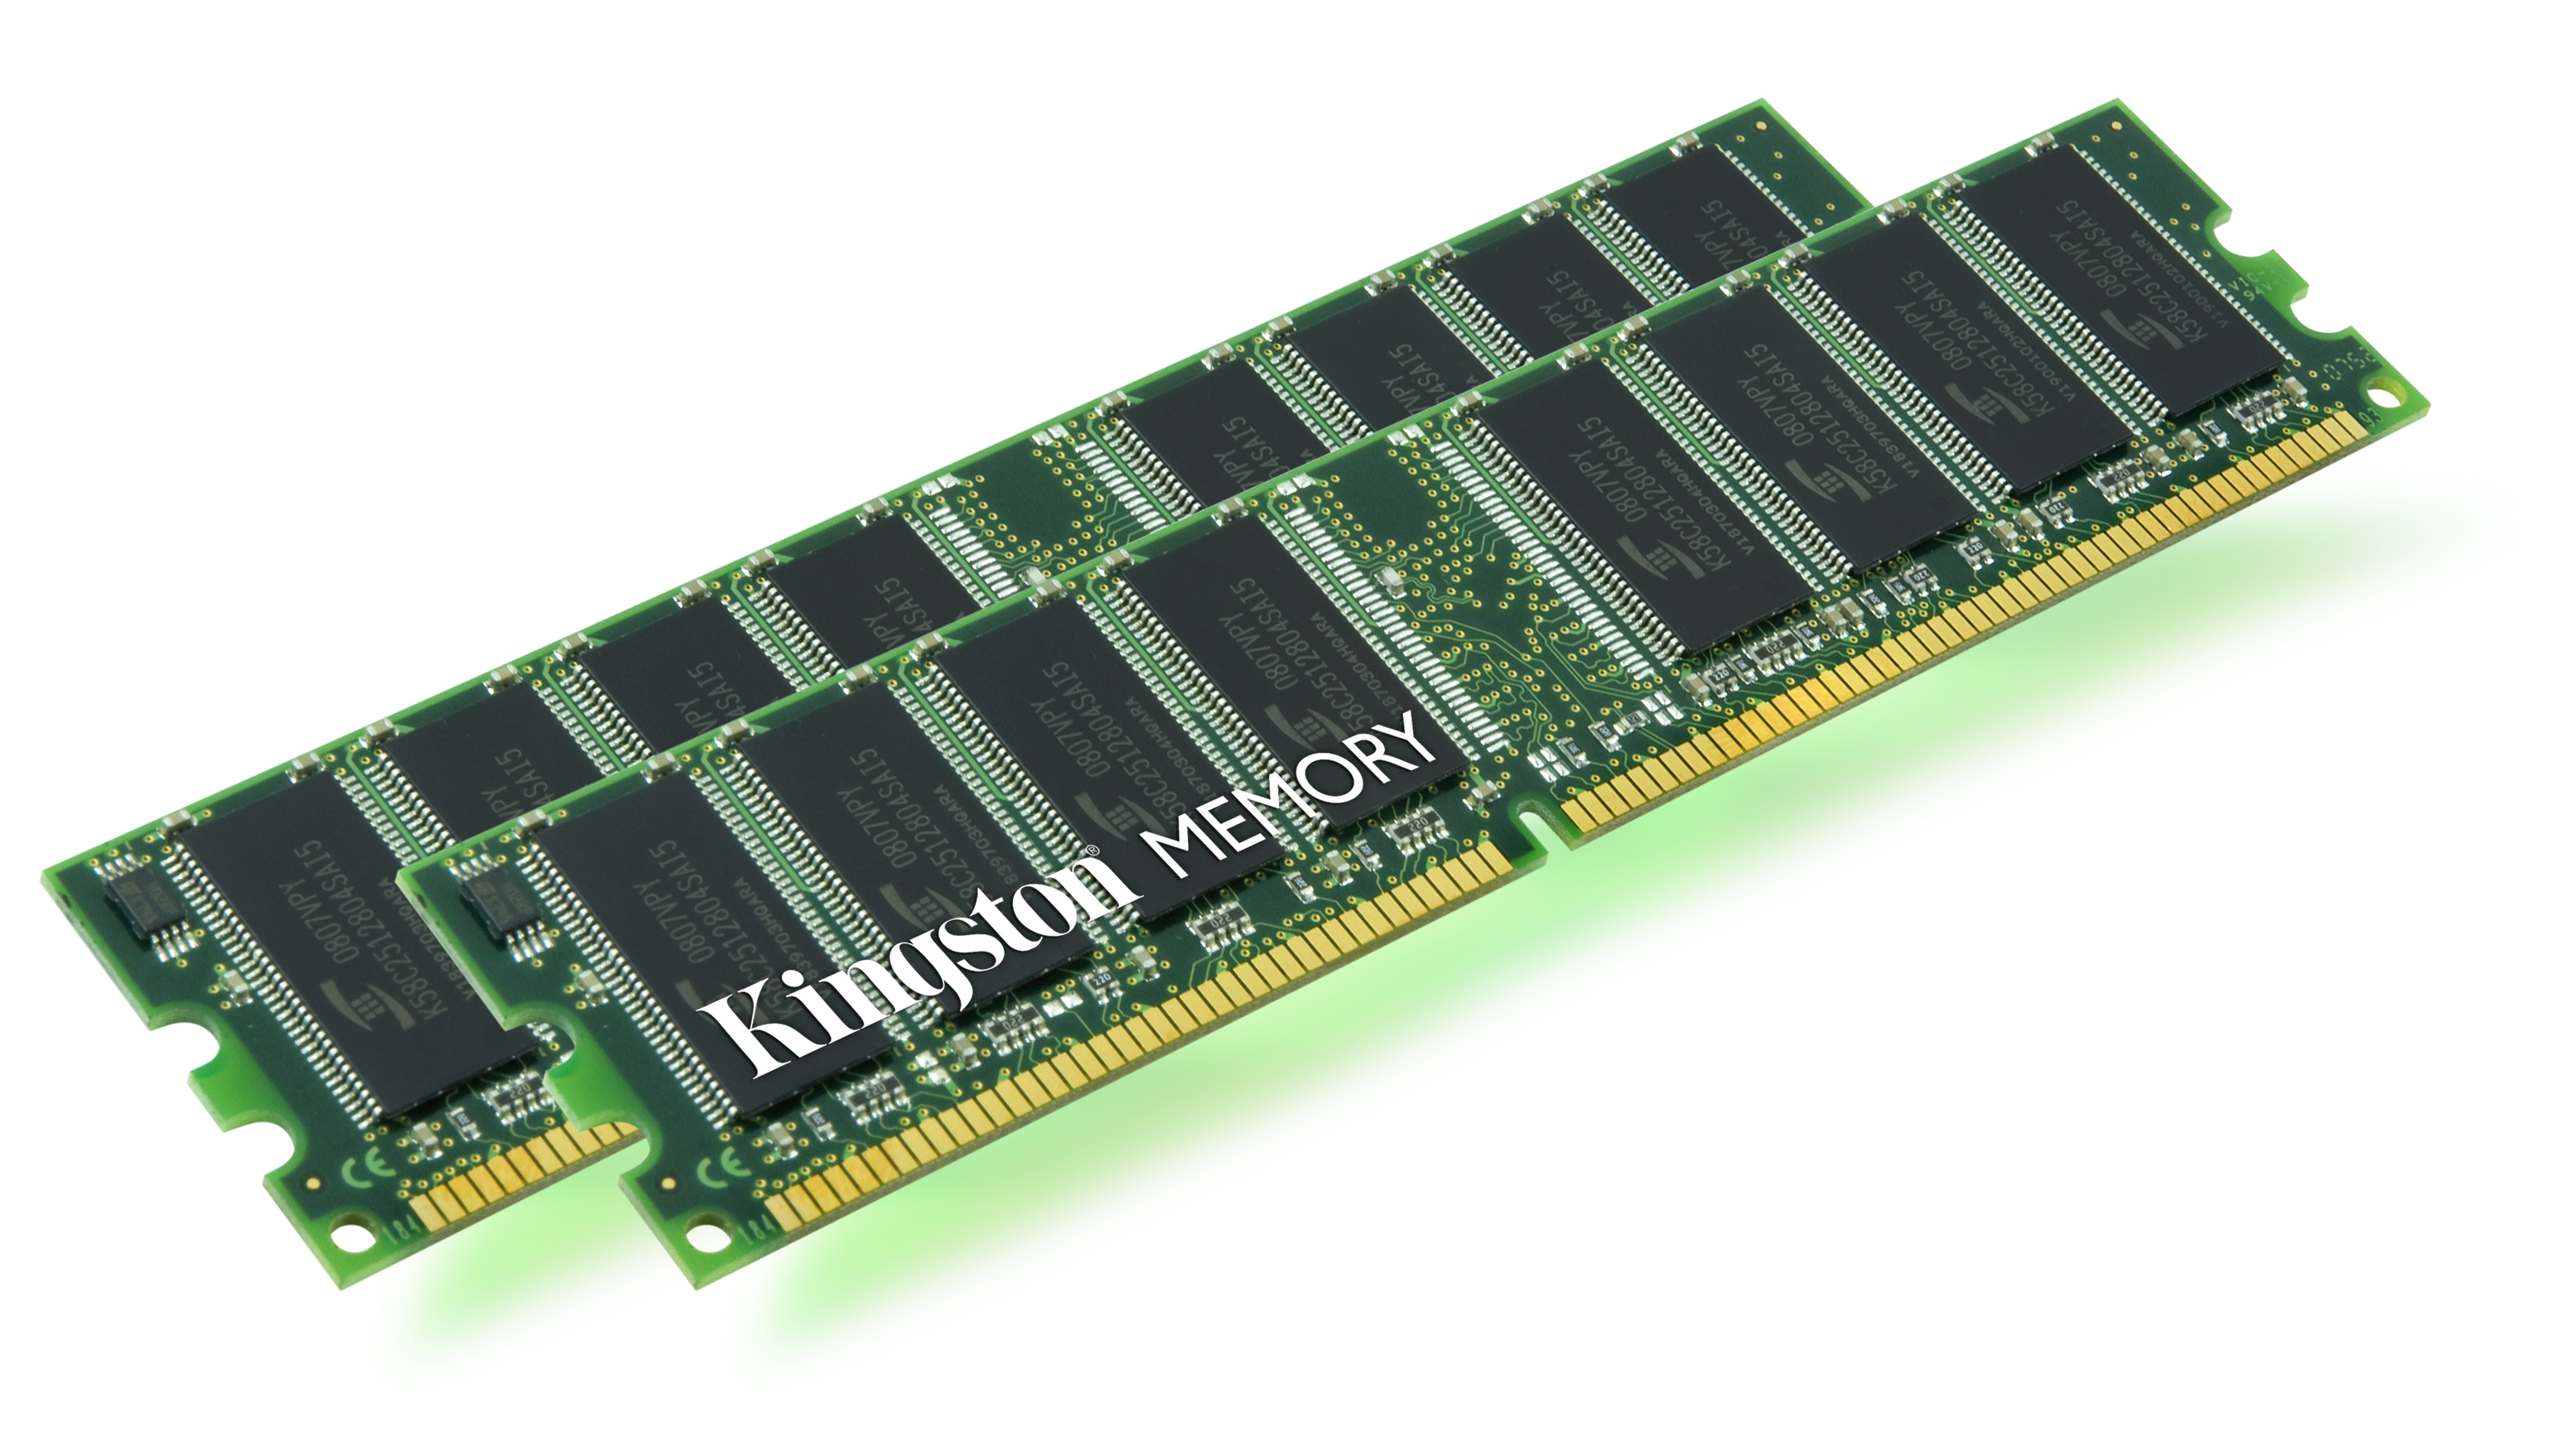 4GB PC2-6400 DDR2-800MHz Non-Ecc Unbuffered Cl6 240-Pin DIMM Memory (KTD-DM8400C6/4G)